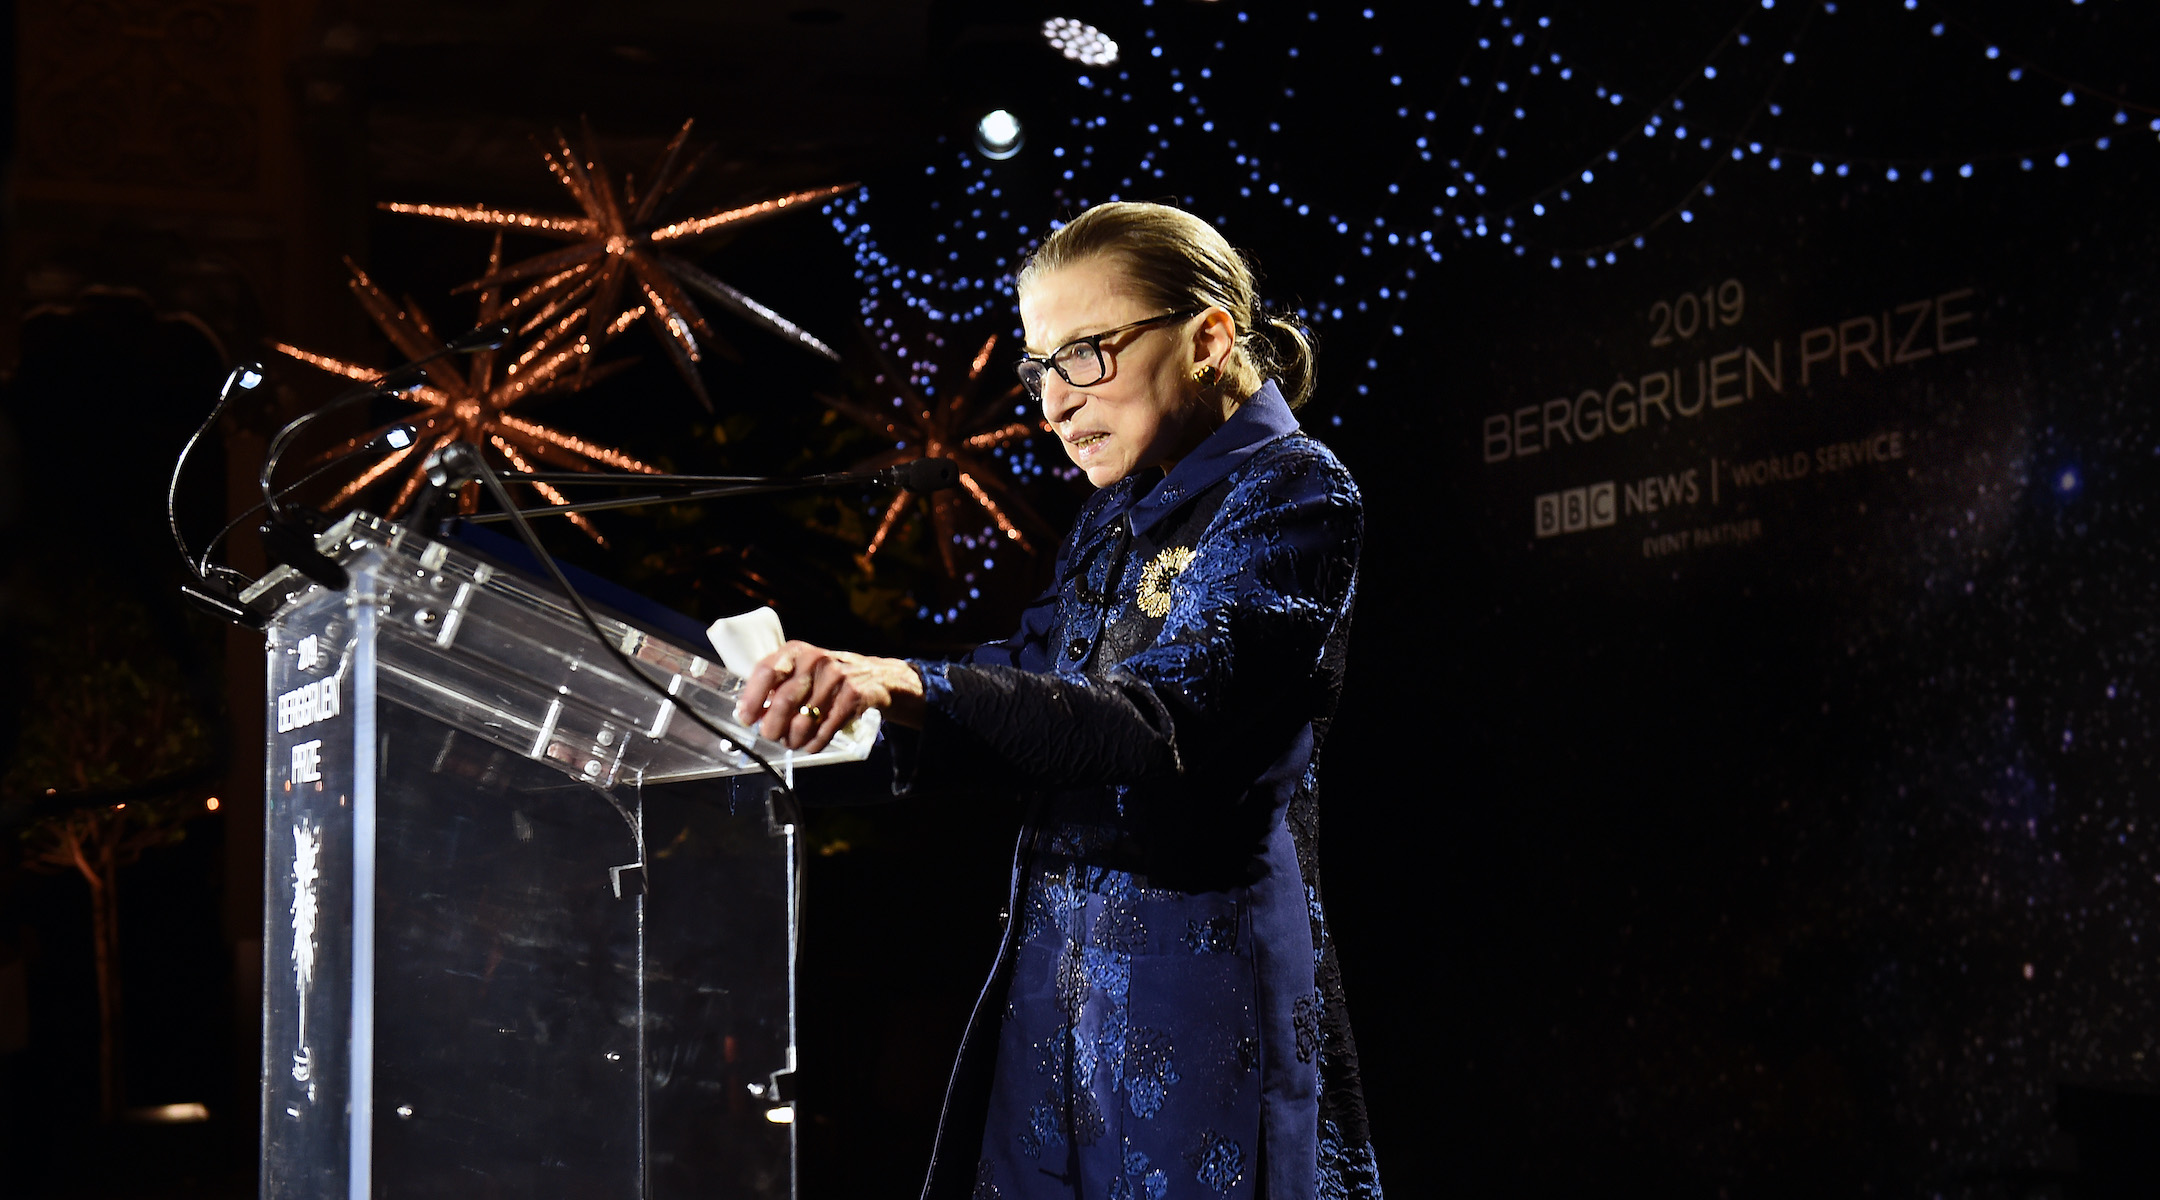 Ruth Bader Ginsburg is at home and 'doing well' after hospitalization